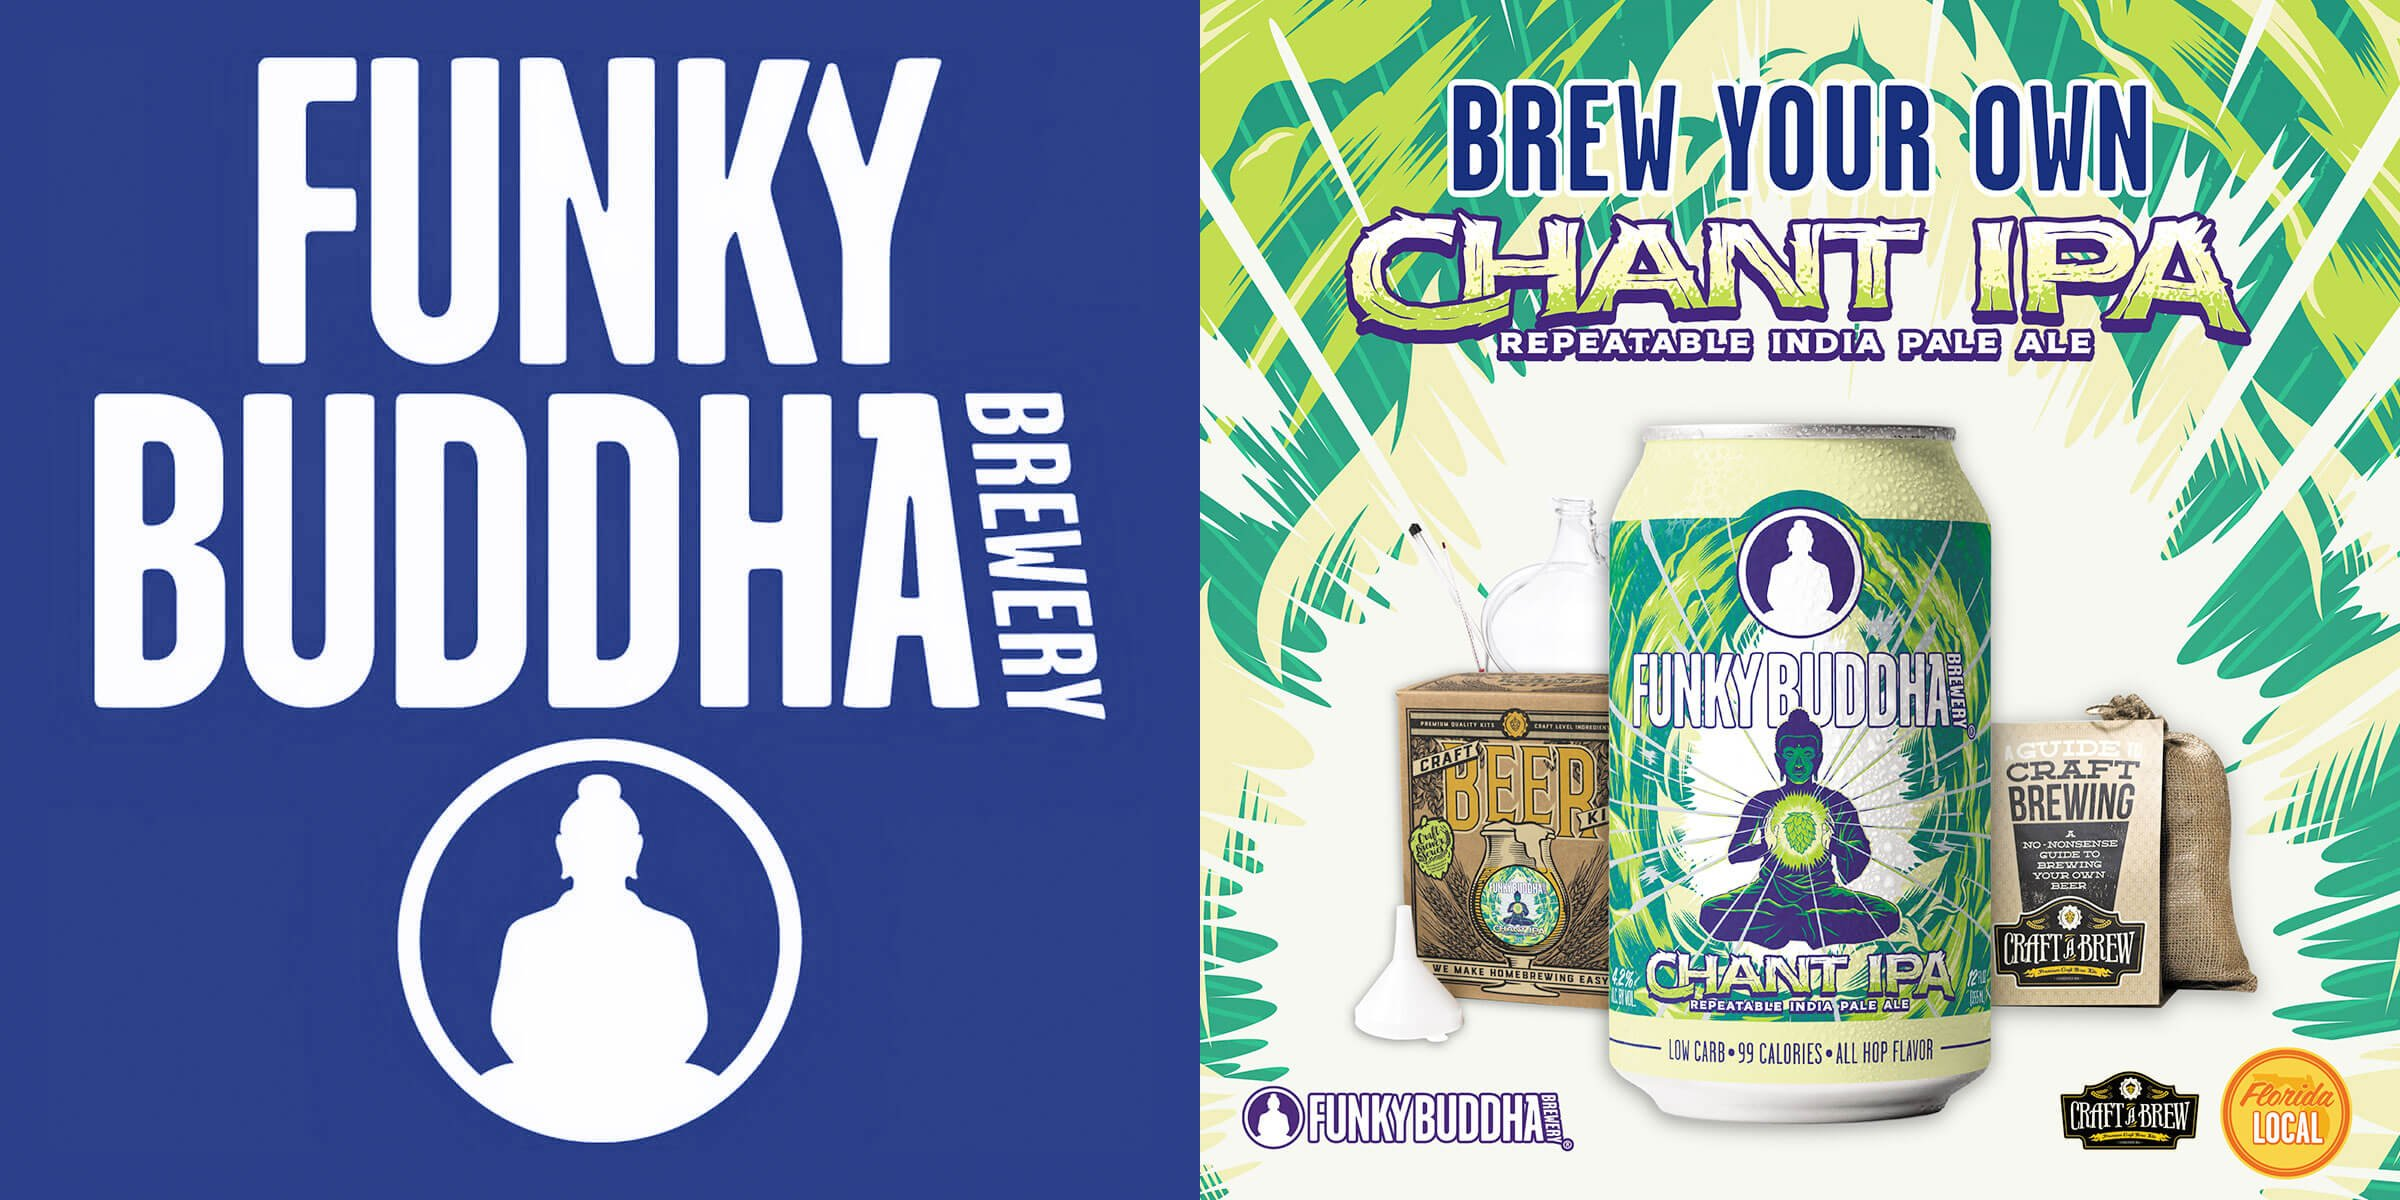 Quarantined craft beer drinkers can now brew Funky Buddha Brewery's newest core beer — Chant IPA — at home with an all-in-one beer making kit.